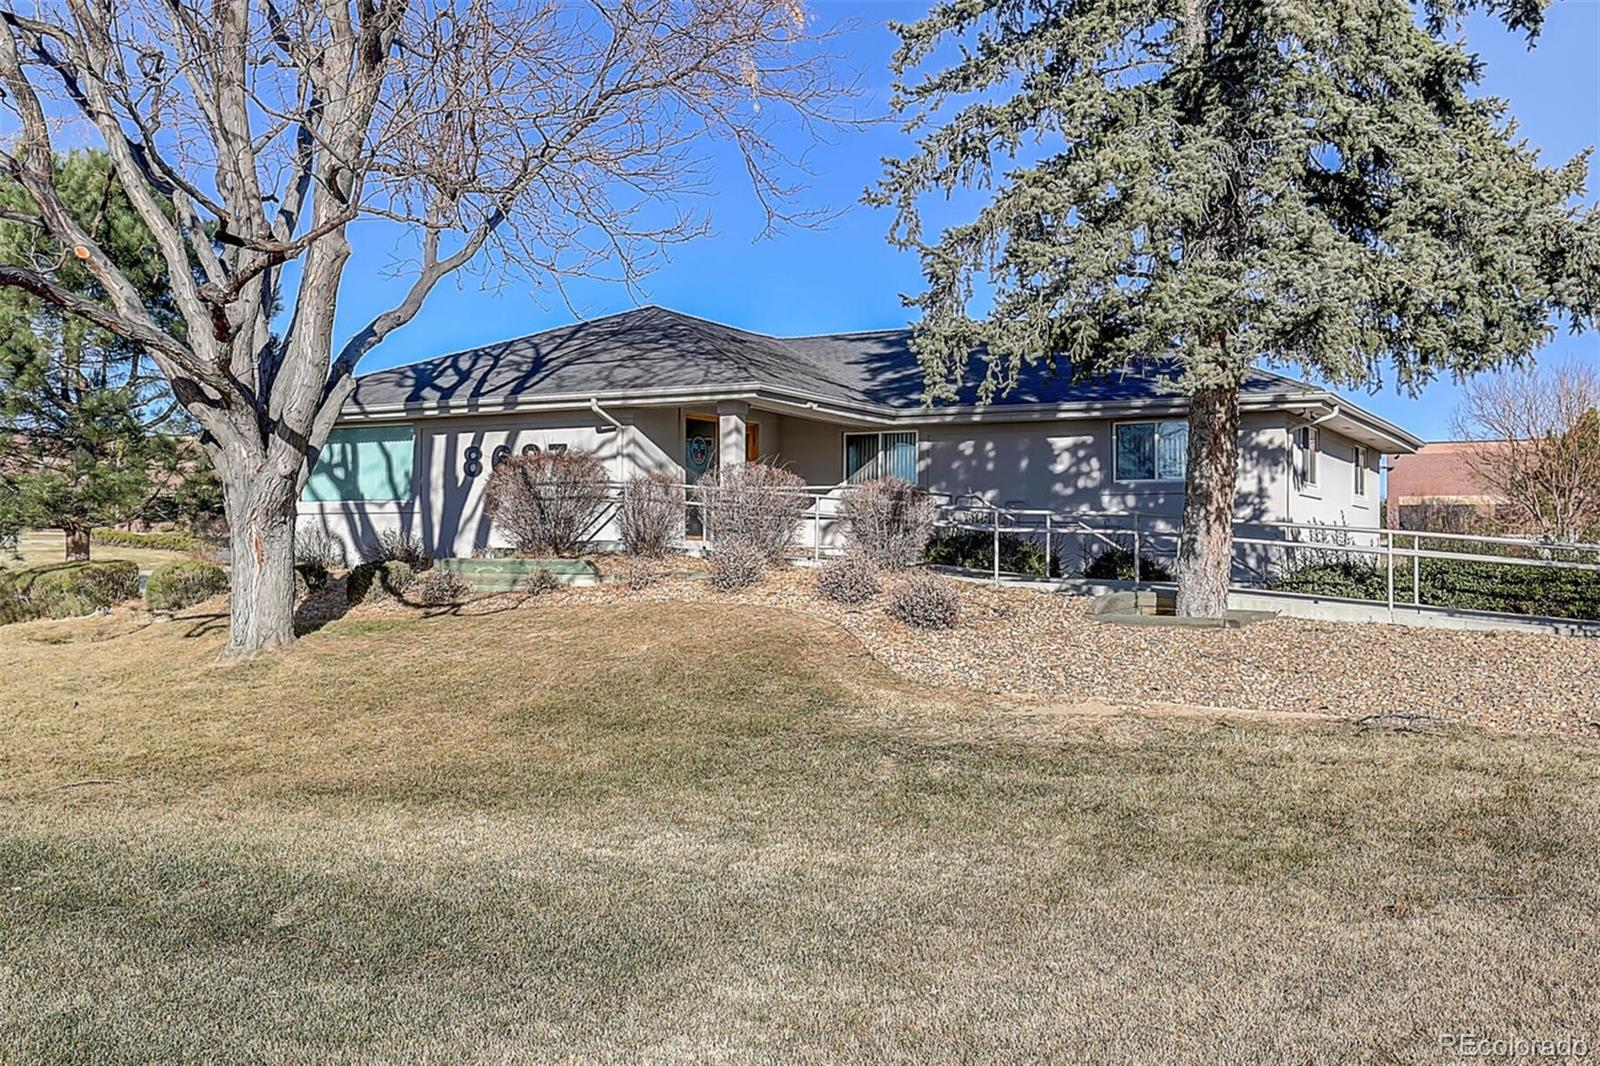 Photo of 8687 W 108th Avenue, Westminster, CO 80021